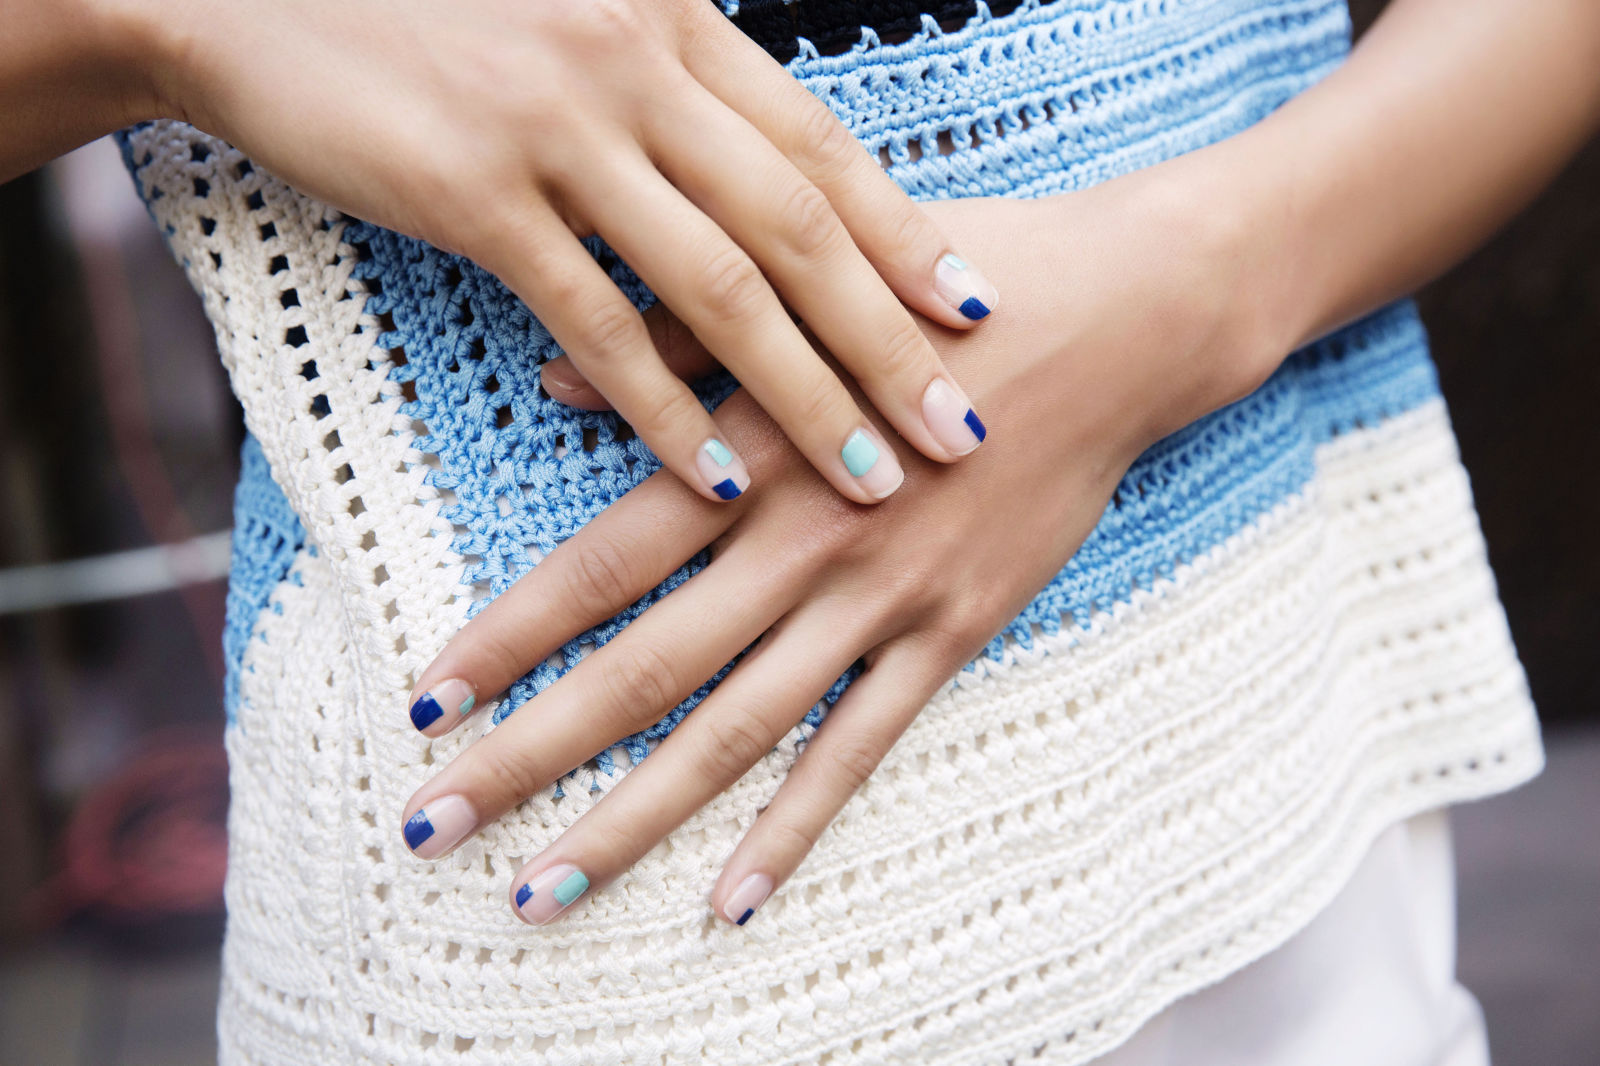 Forum on this topic: Nails at New York Fashion Week: The , nails-at-new-york-fashion-week-the/